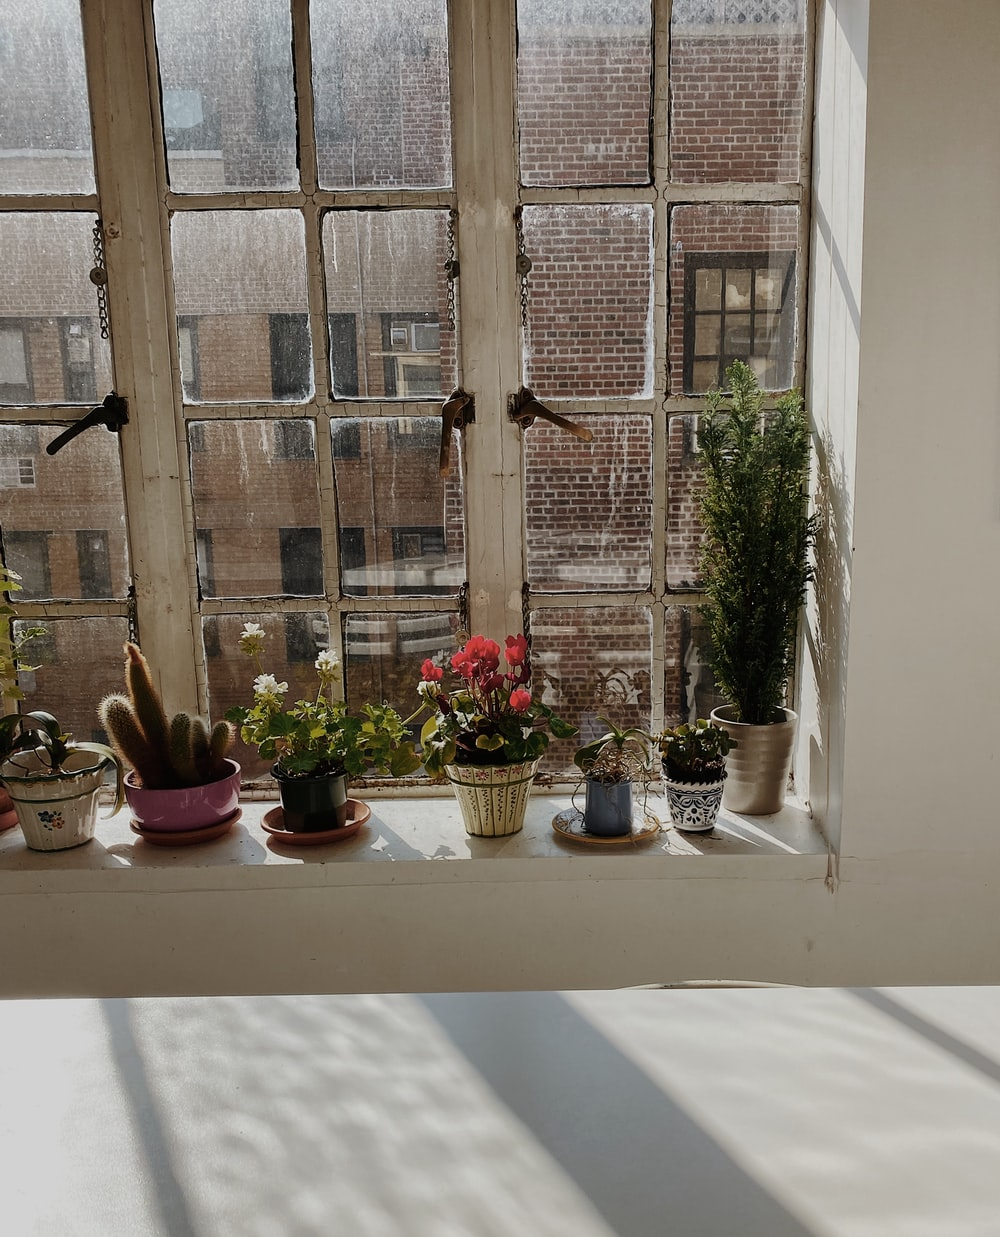 green potted plants on window